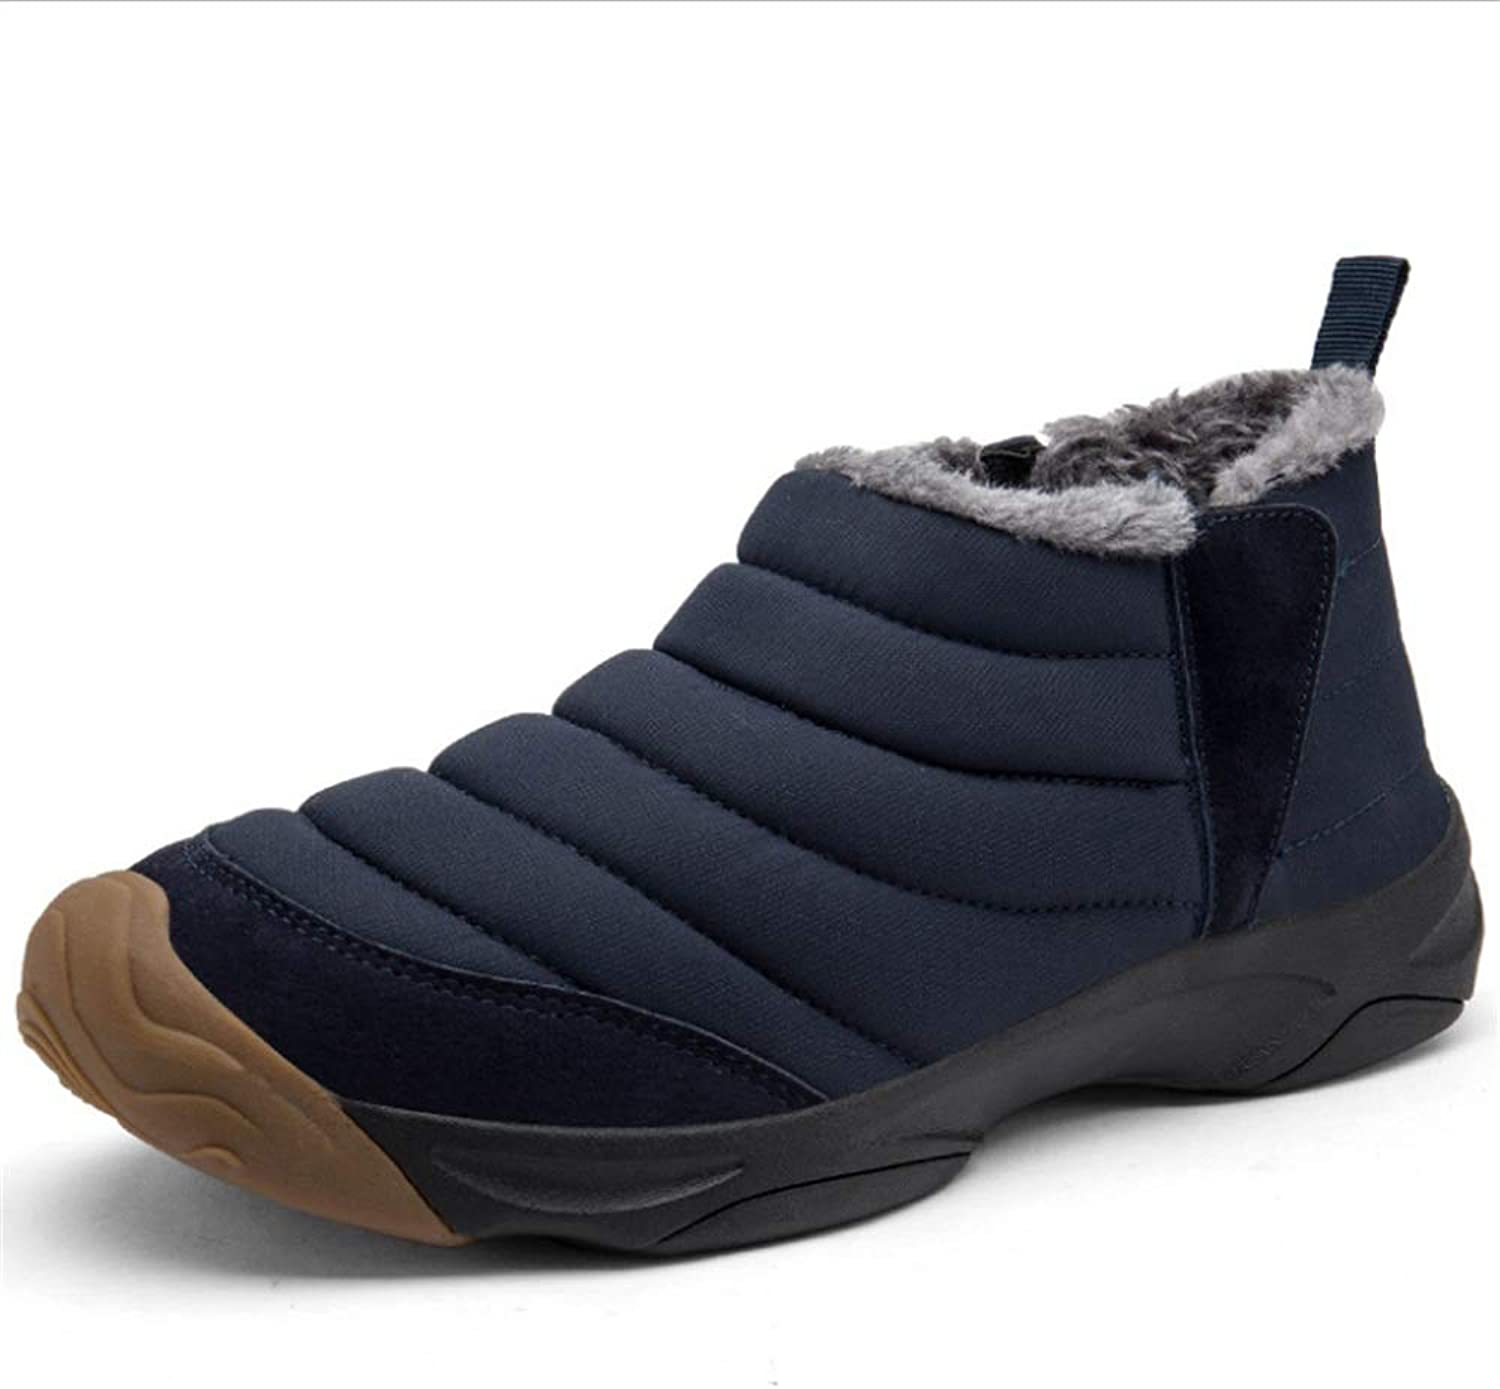 Snow Boots Womens and Mens Winter Lined Boots Waterproof Outdoor Hiking Warm shoes (color   bluee, Size   7 US)